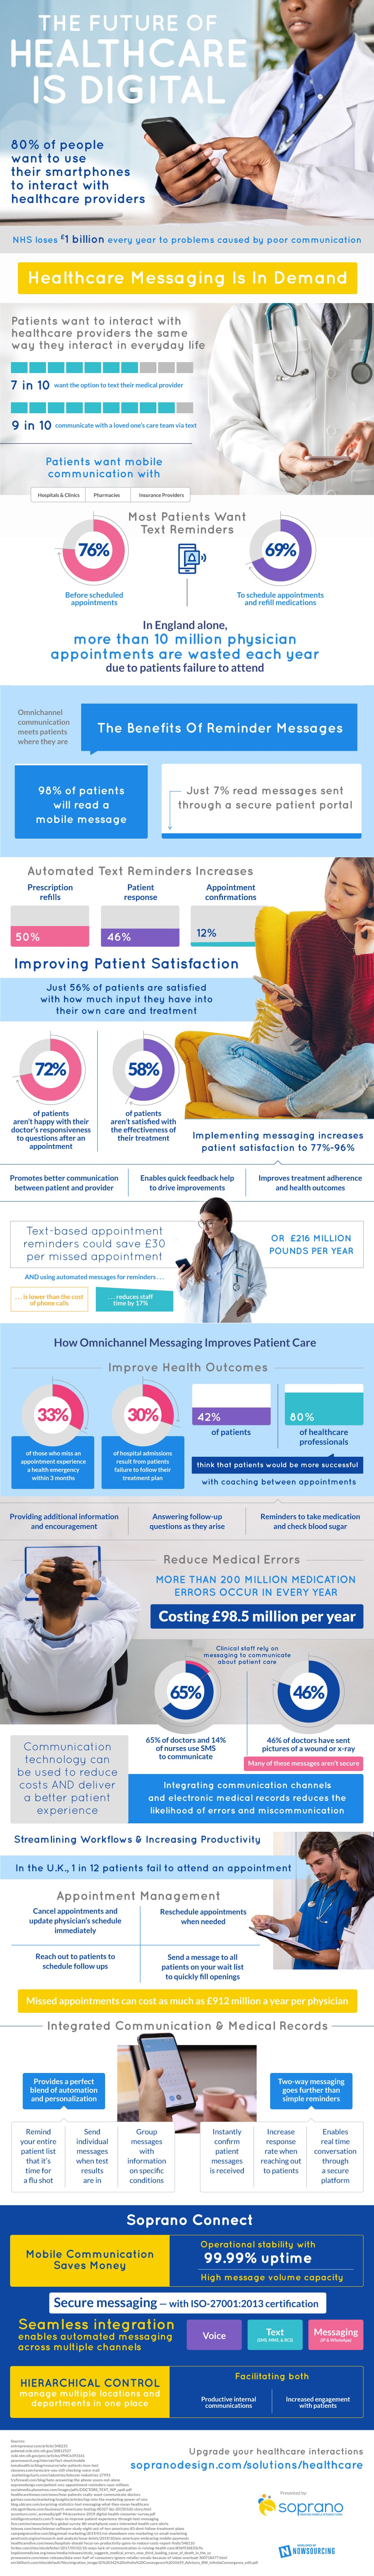 The Future of Healthcare is Digital